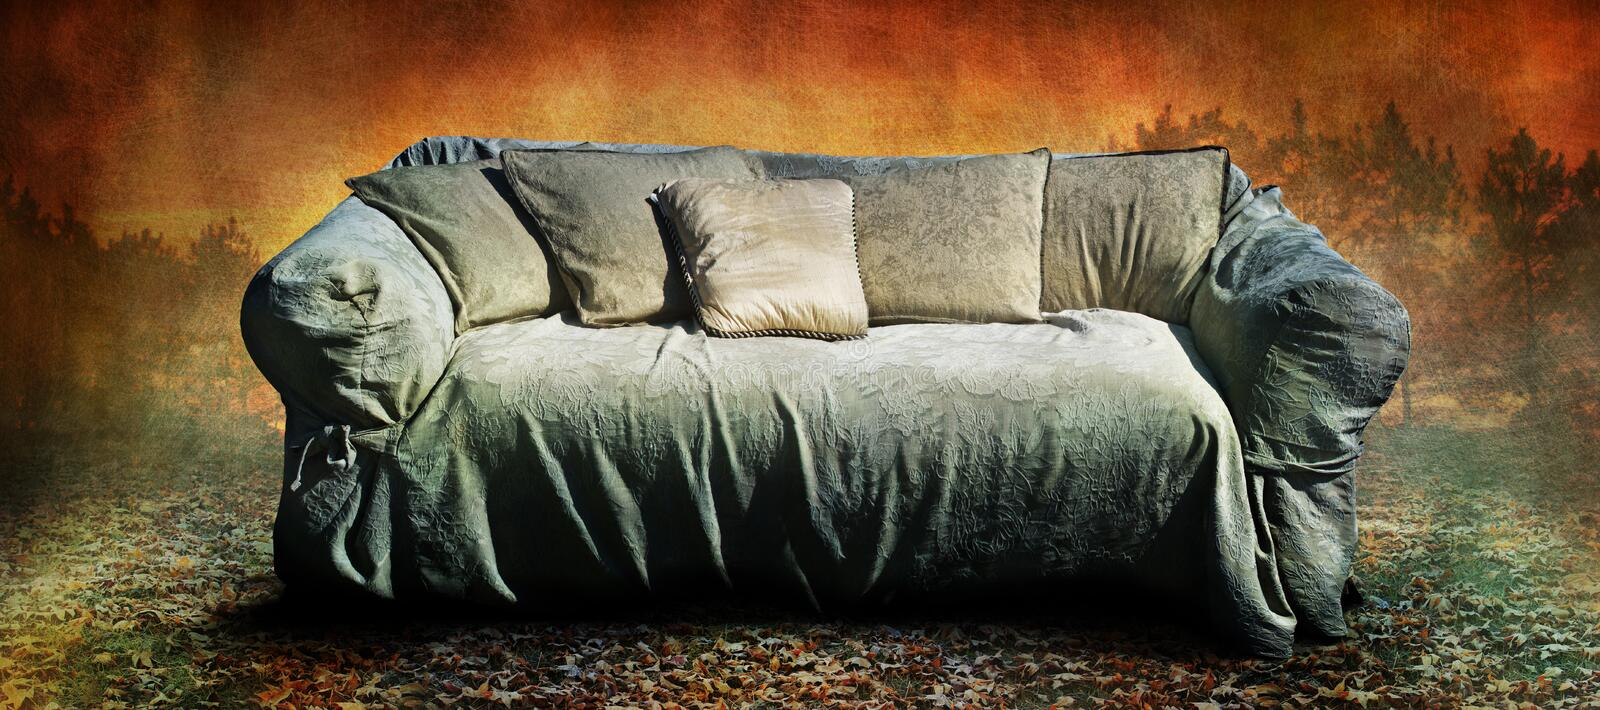 Couch. An old grunge couch on a leafy surface with a landscape background. Concept for an interview royalty free stock image